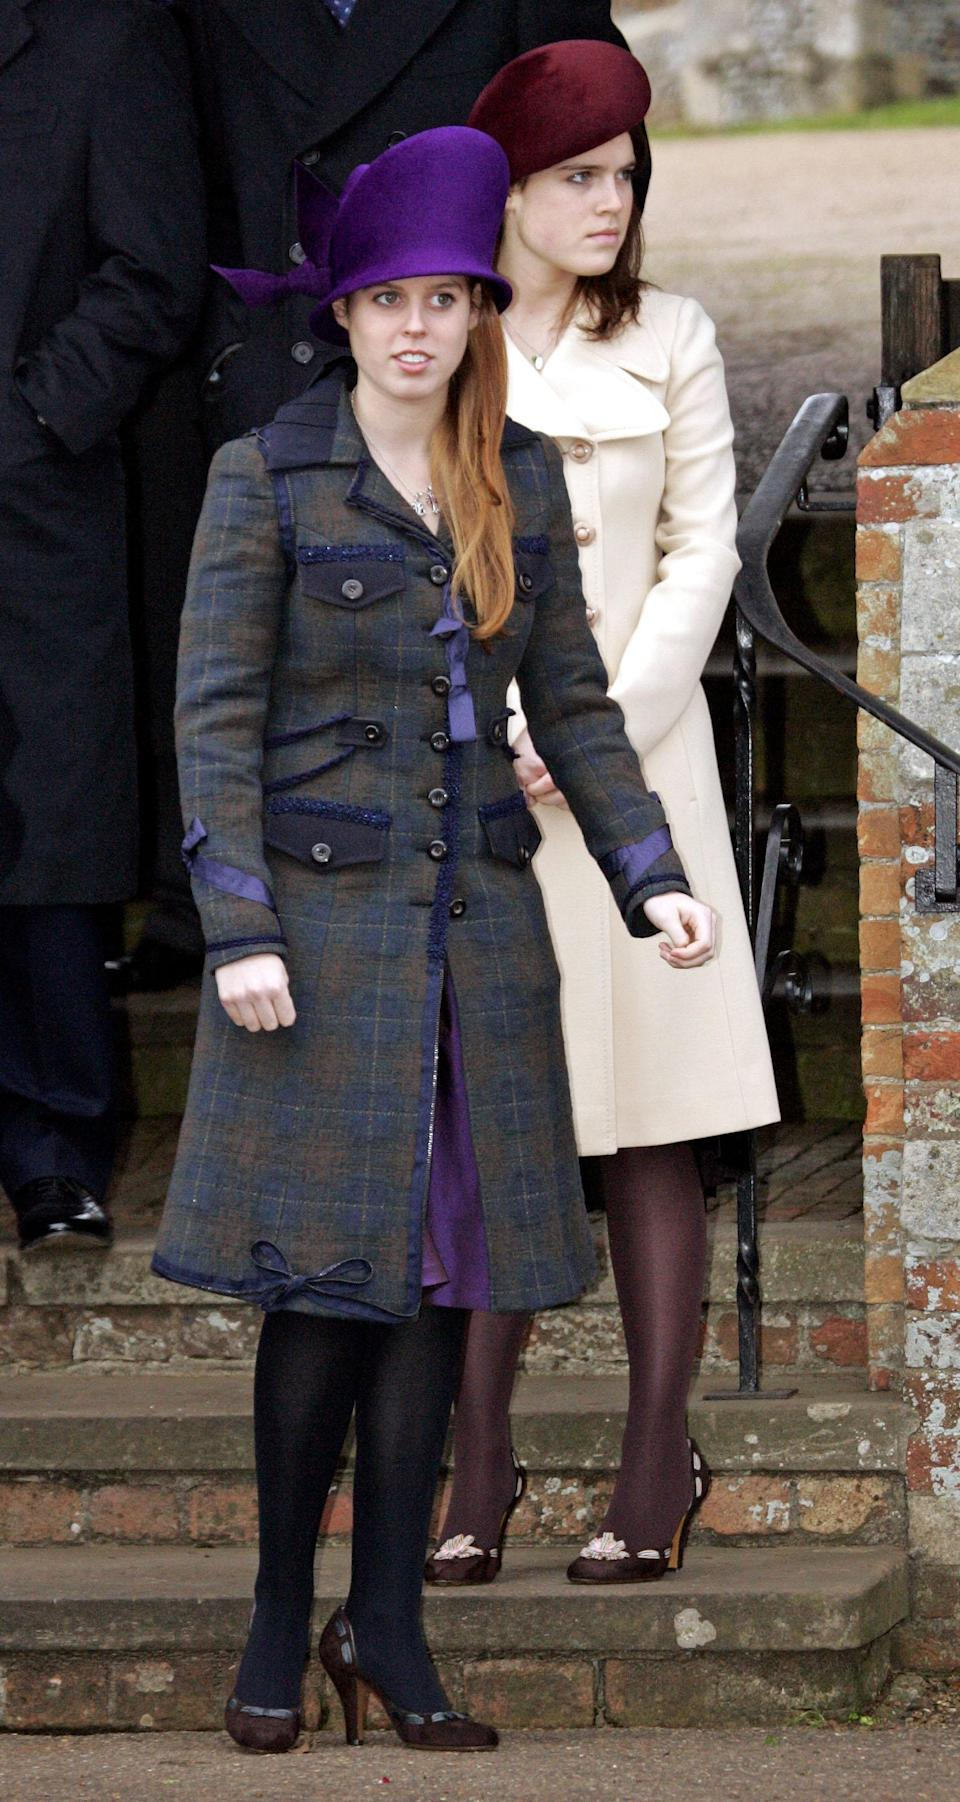 Princess Beatrice donned an unusual purple hat and matching coat in 2005, while her sister, Princess Eugenie, went for a nude coat and burgundy hat. Photo: Getty Images